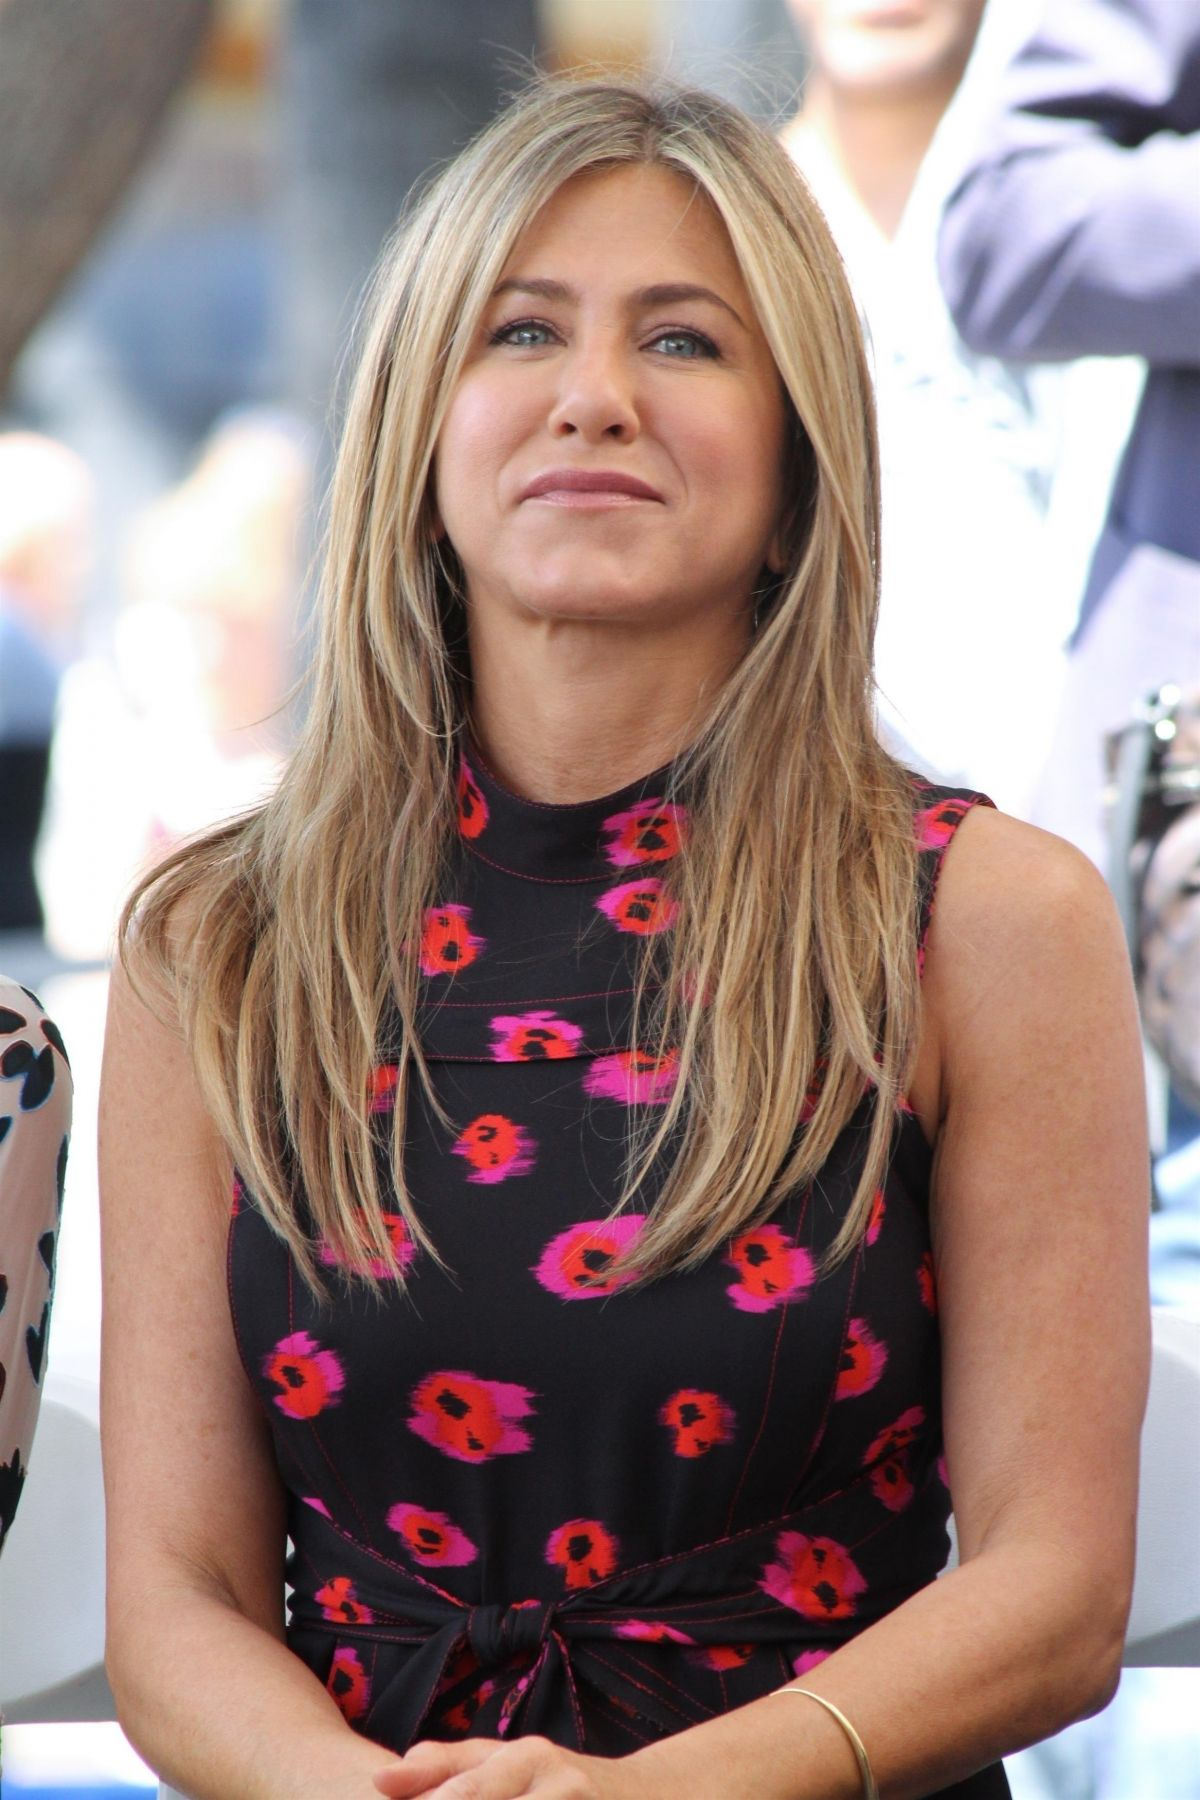 Jennifer Aniston At Jason Bateman's Hollywood Star Ceremony in Hollywood   jennifer-aniston-at-jason-bateman-s-hollywood-star-ceremony-in-hollywood_2